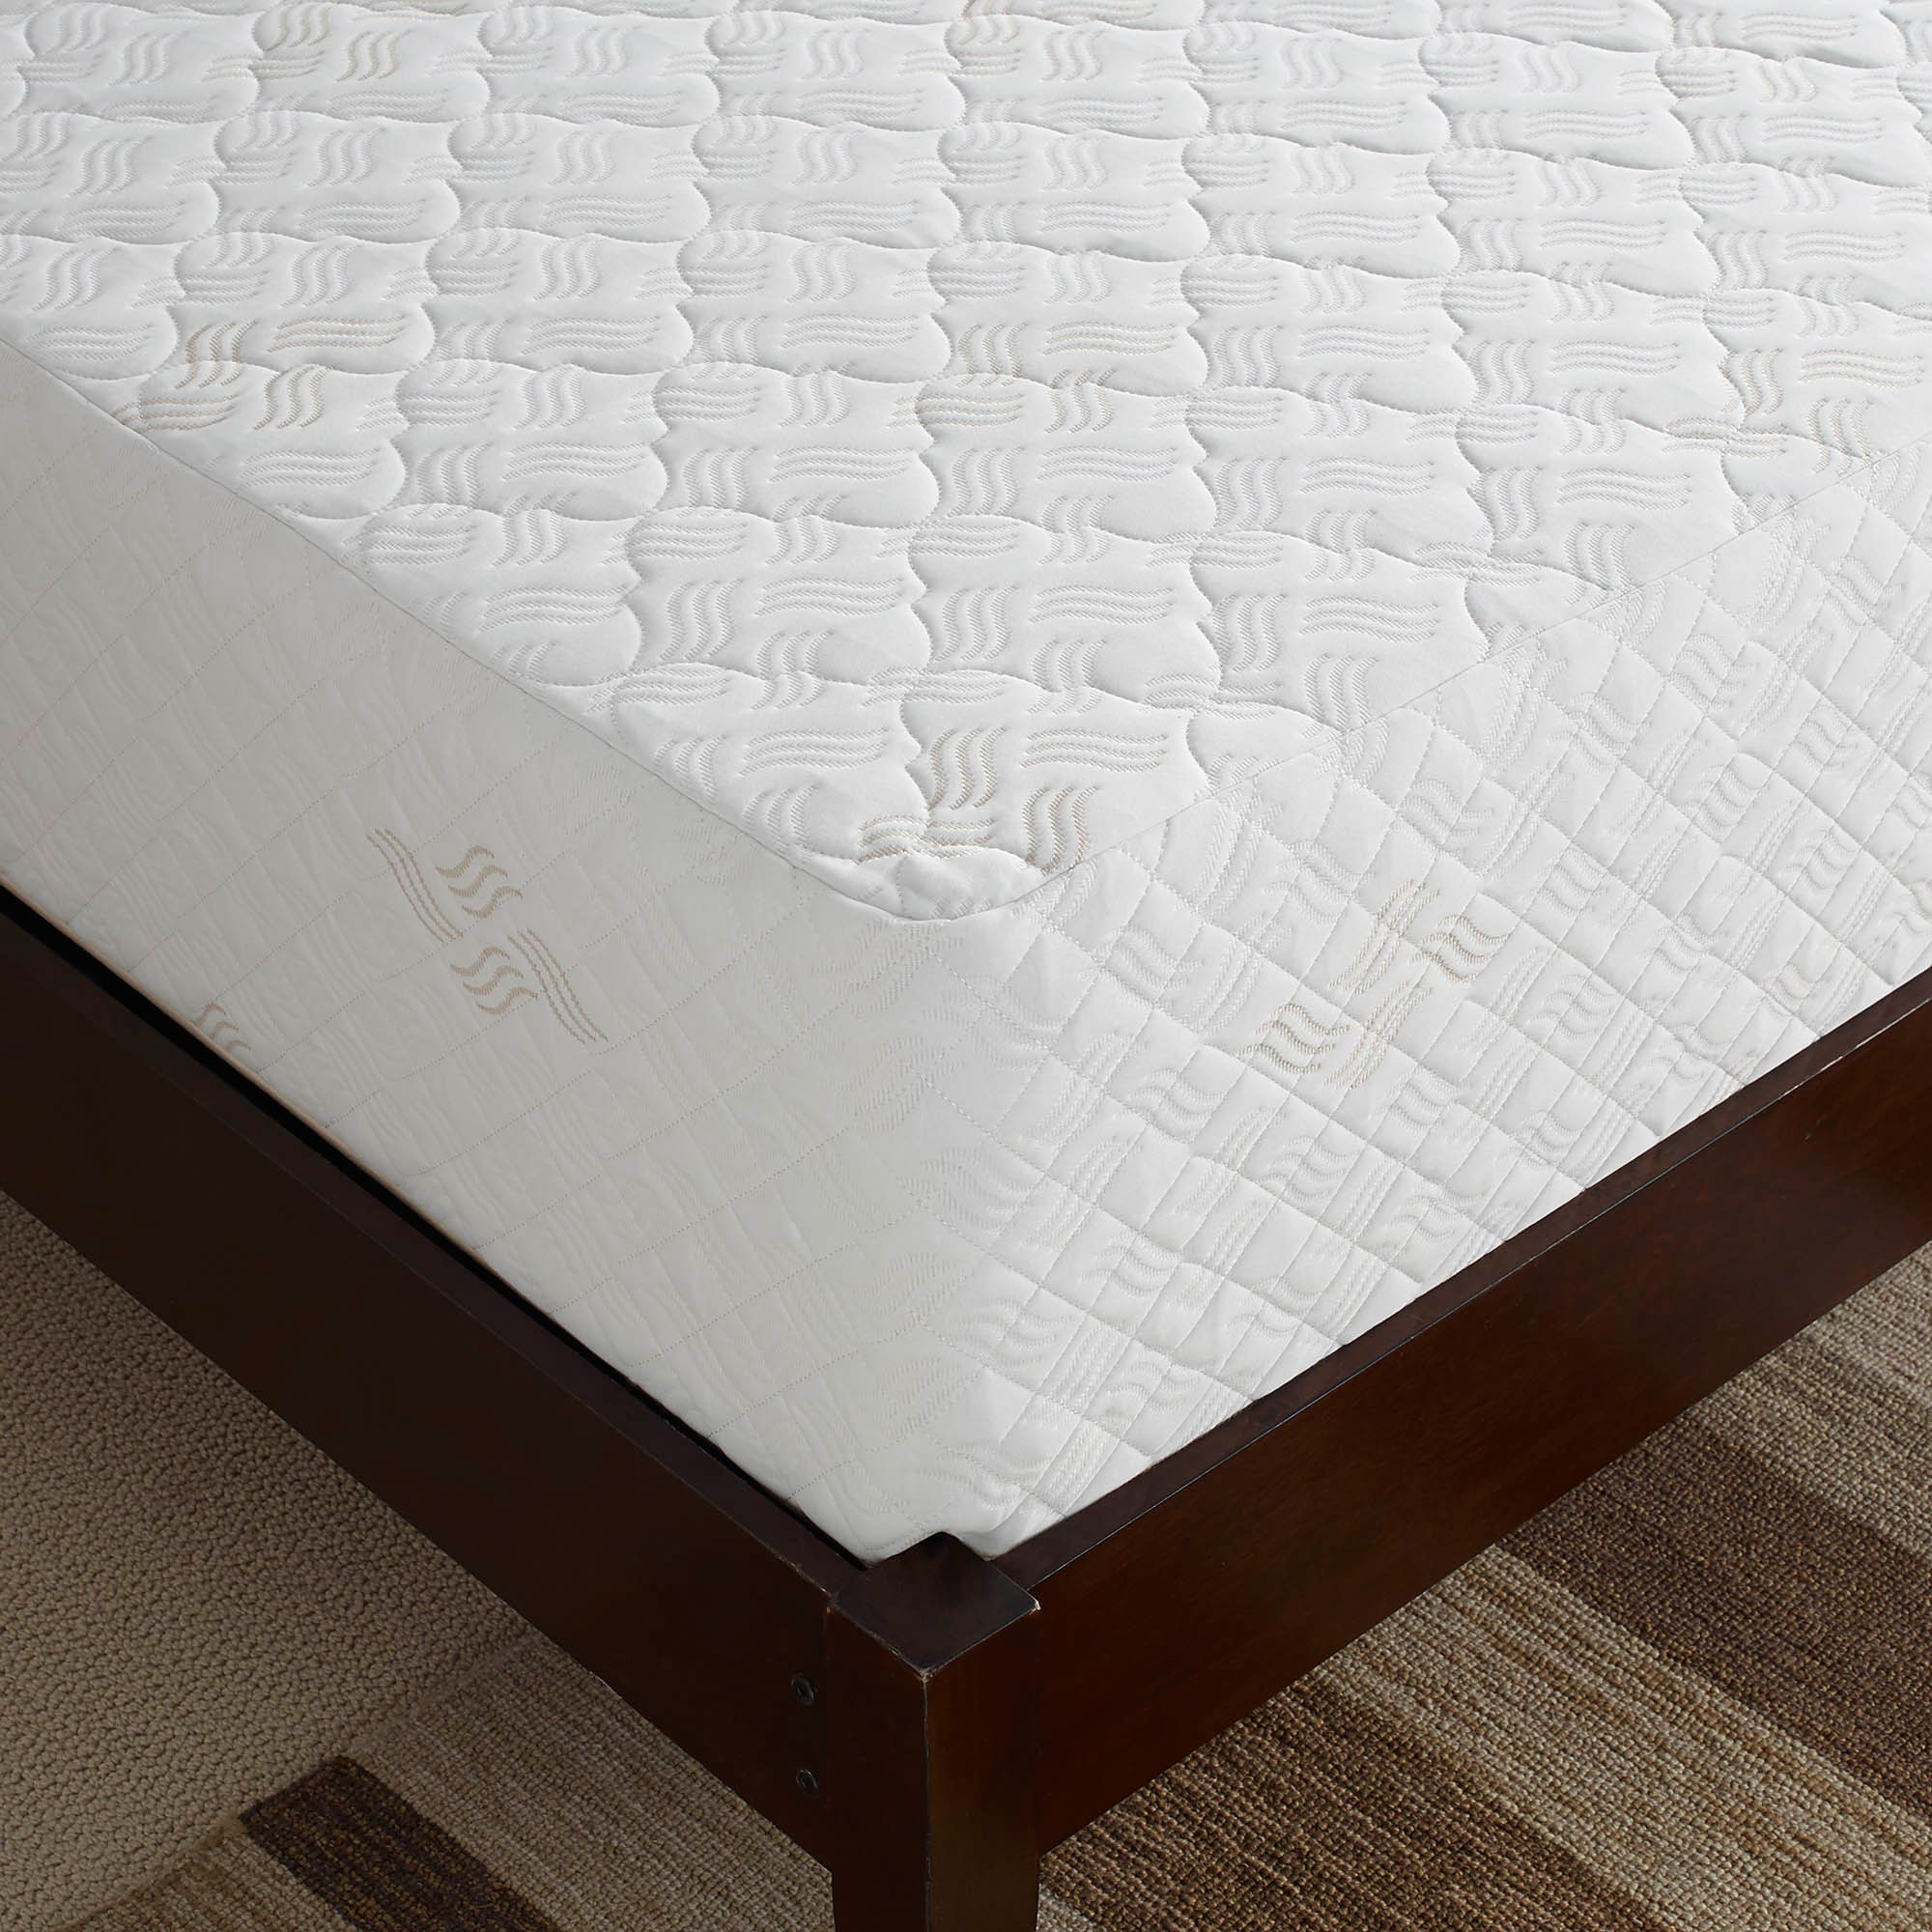 Touch of fort Deluxe 12 inch Queen size Memory Foam Mattress